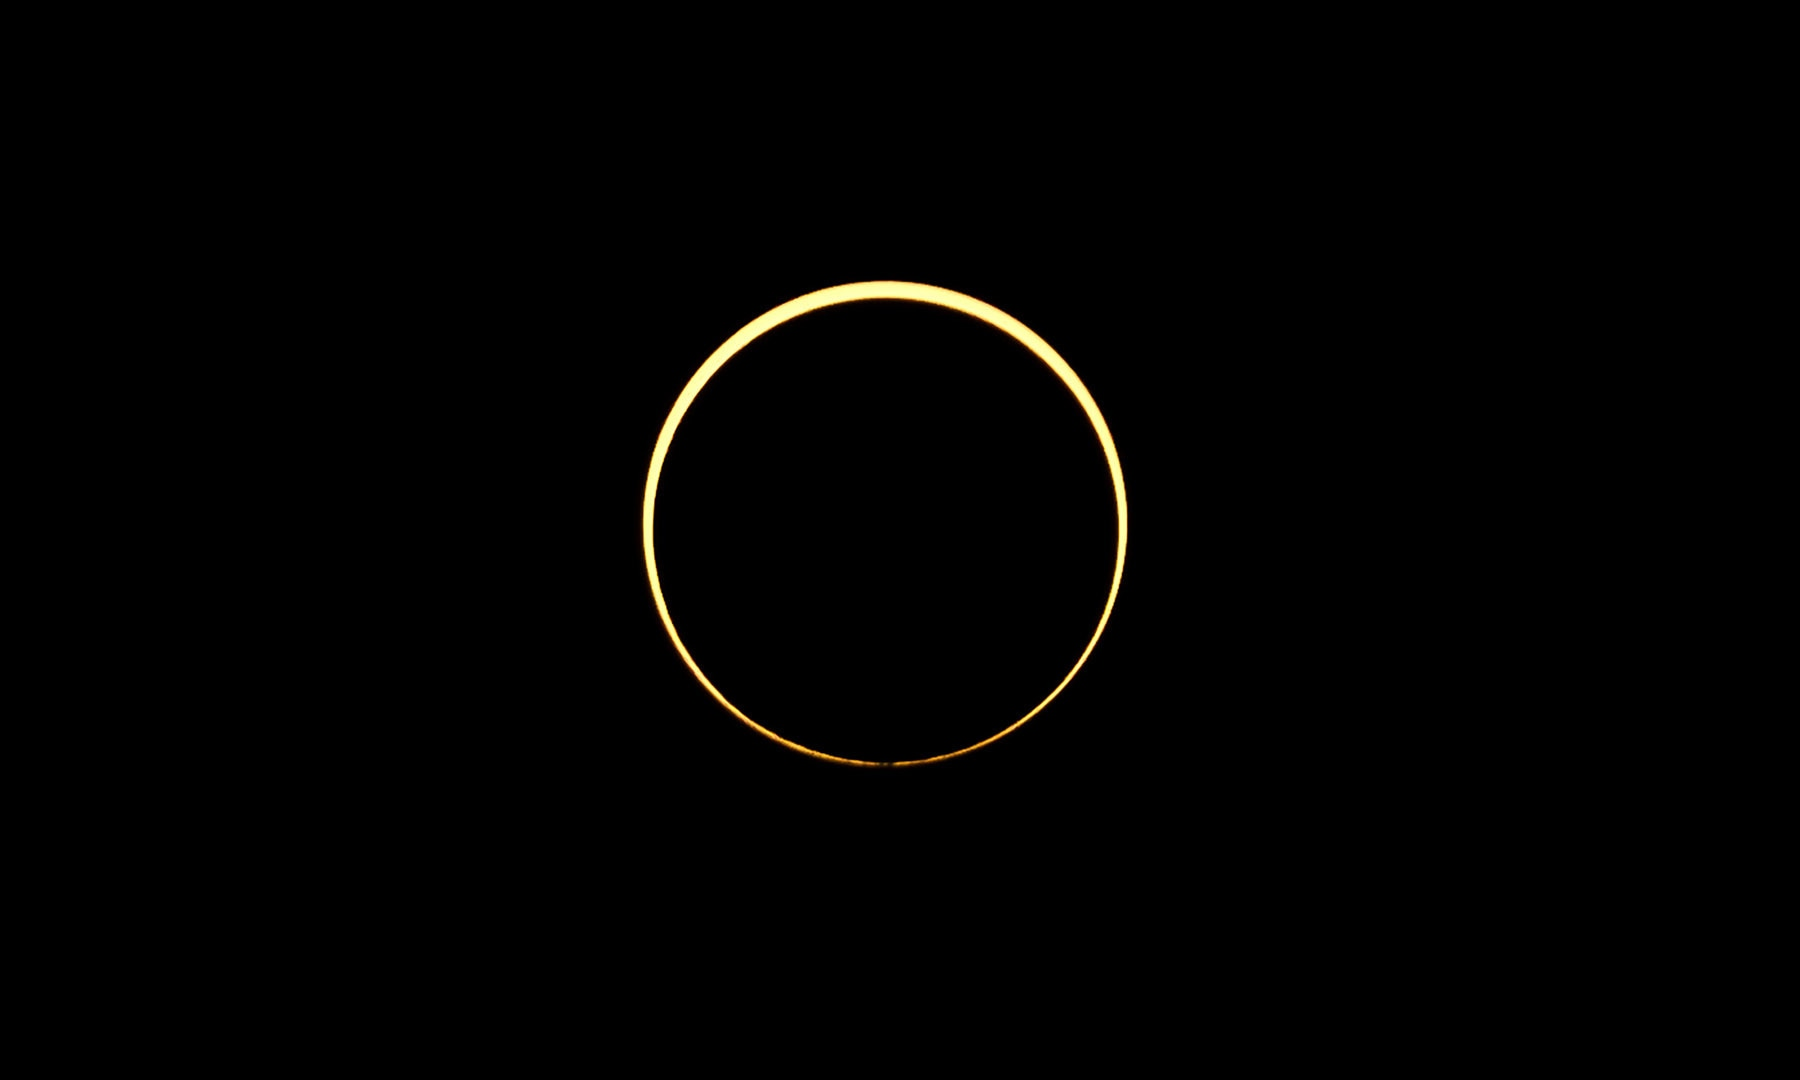 The moon passes between the sun and the earth during an annular solar eclipse in Singapore on December 26. — Reuters